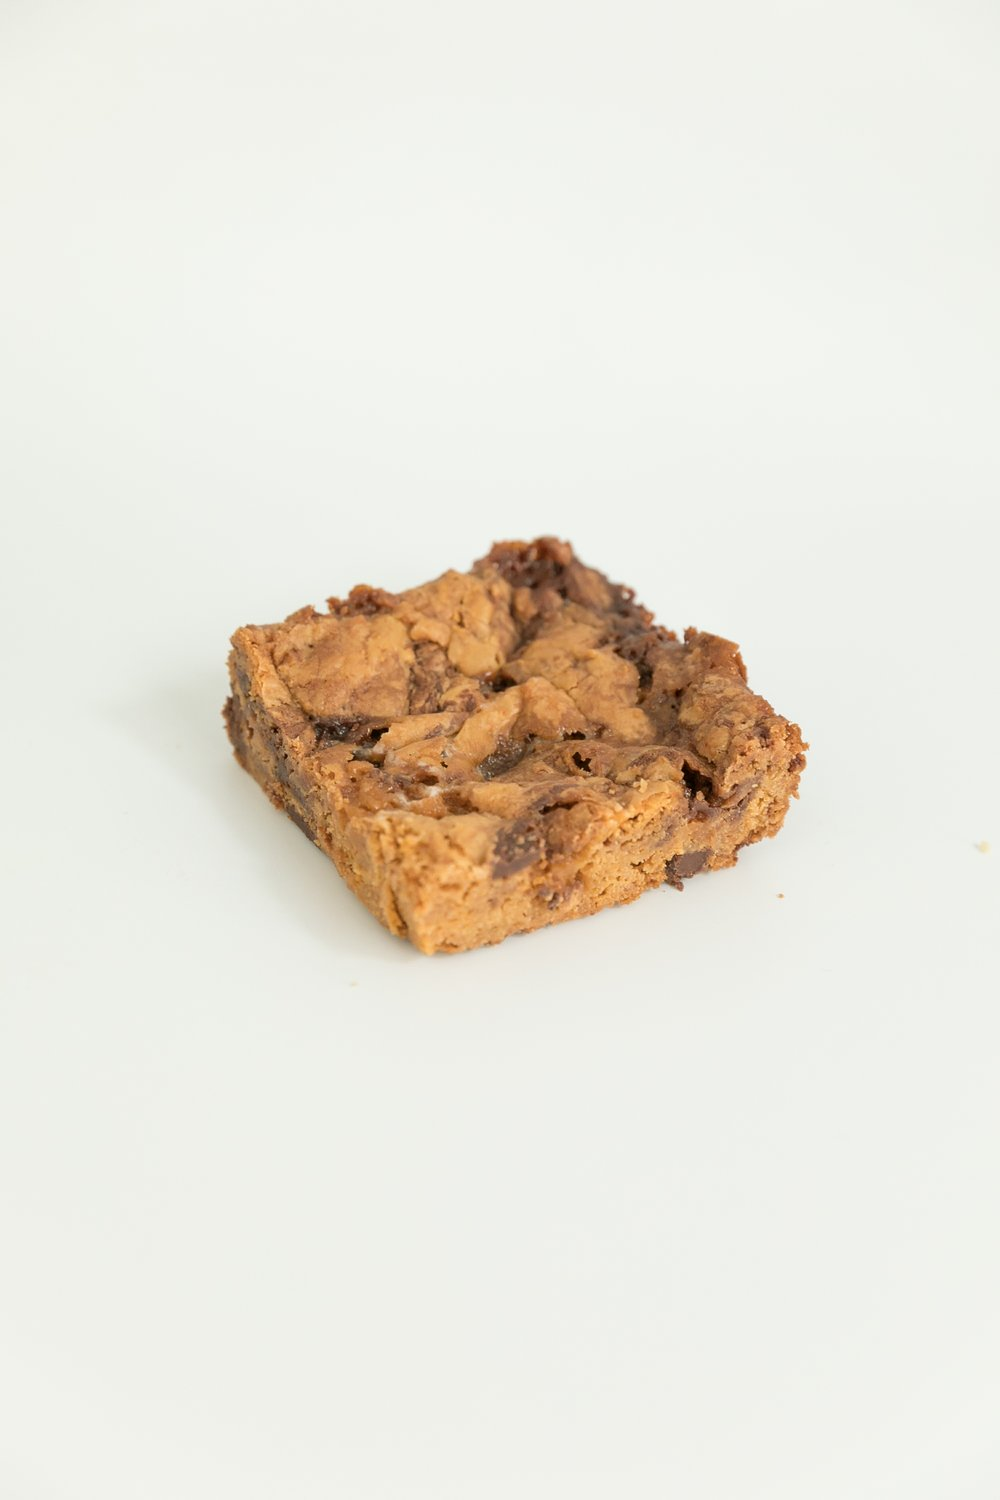 surfer squares are a mixture of butterscotch, chocolate and marshmallow for a caramel-like flavor